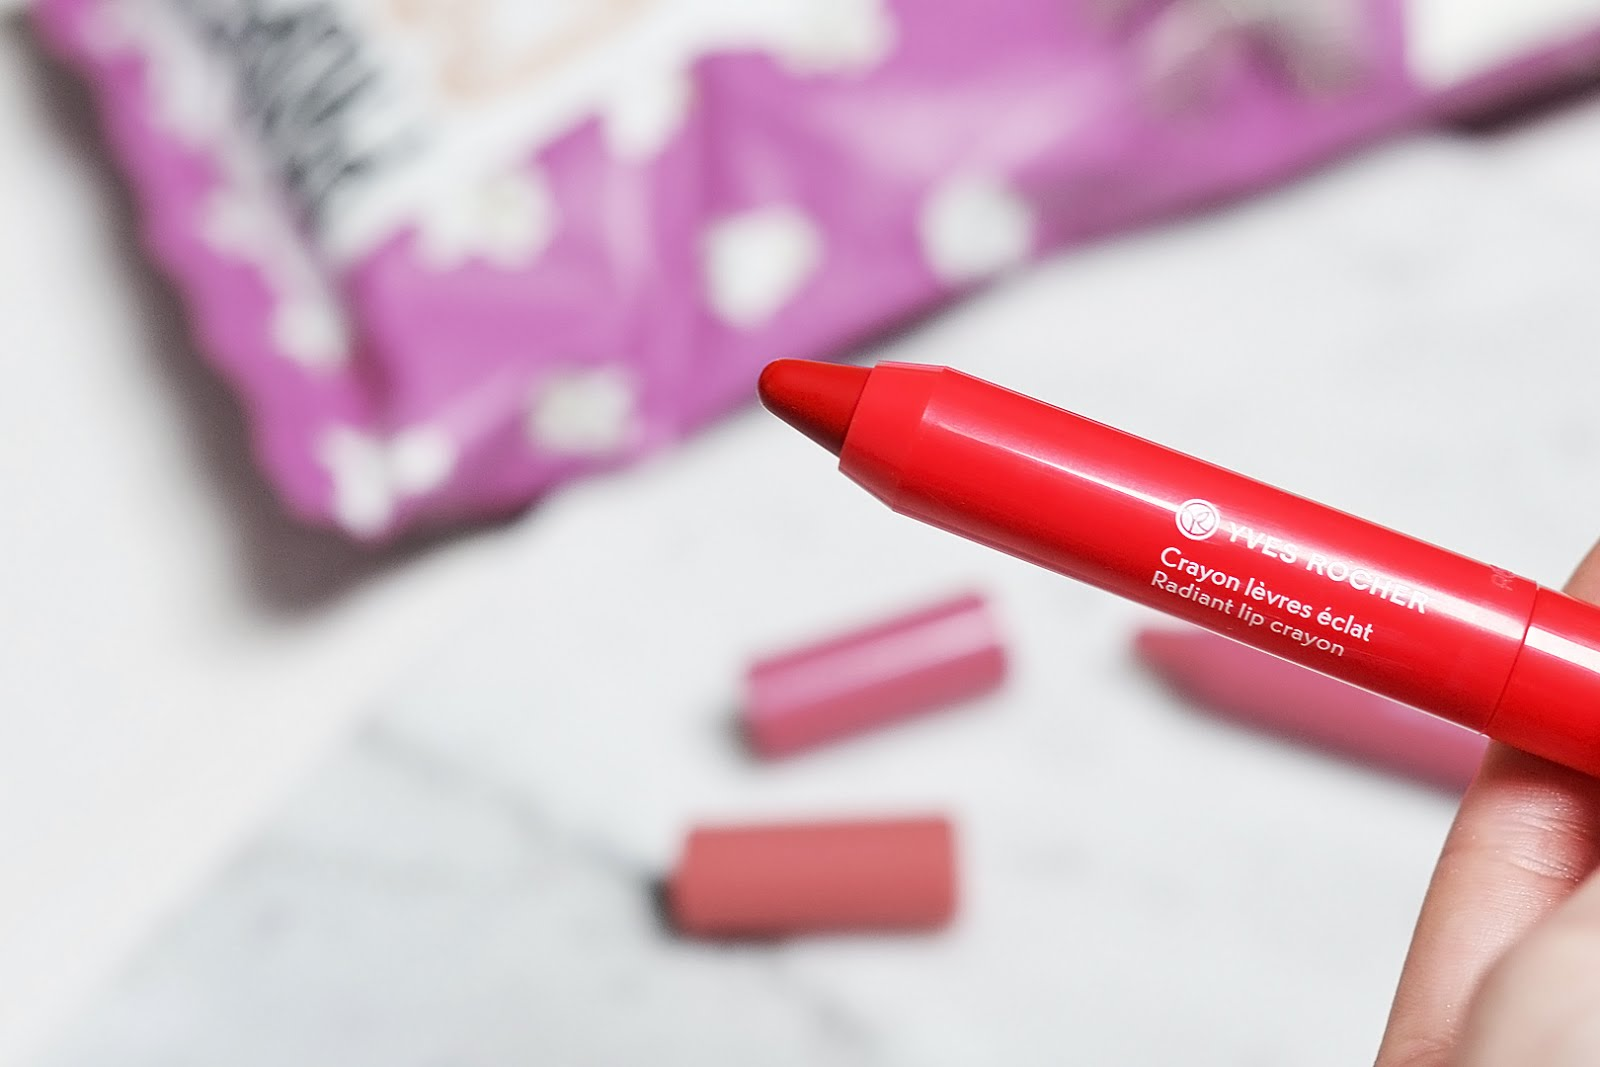 Yves rocher, glossy lip pens, Rose somptueux, Rouche flamboyant, swatches, fashion blogger, belgie, belgium, mode blogger